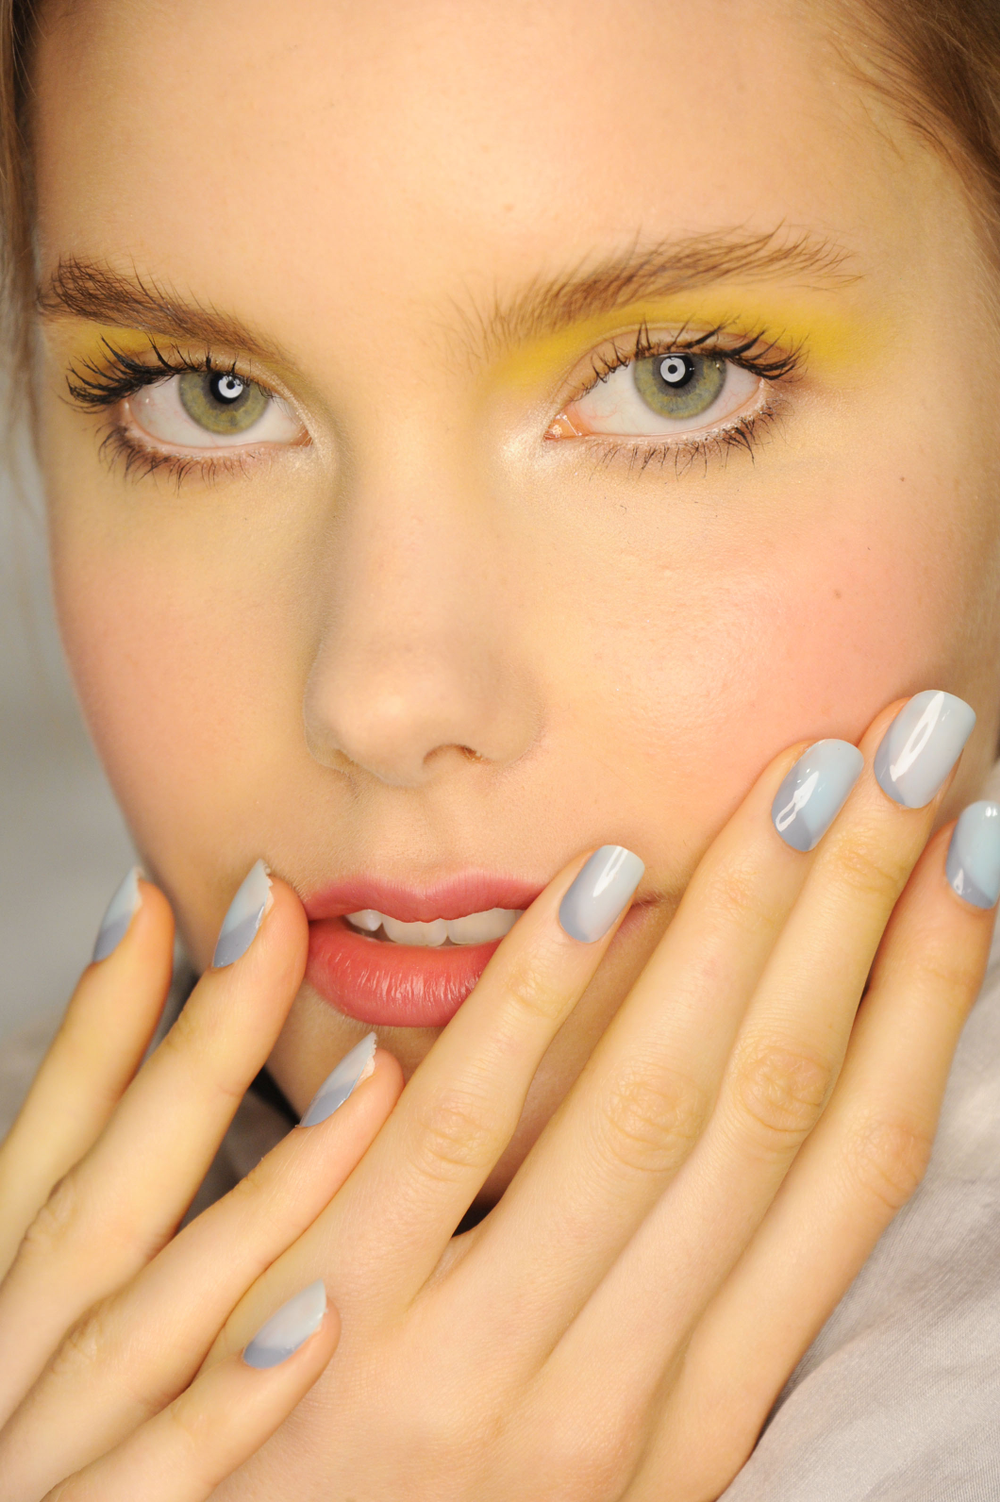 <p>Morgan Taylor&rsquo;s lead manicurist, Gina Edwards created a captivating geometric blue nail for Angel Shanchez&rsquo;s S/S 2015 runway. Photo courtesy of Morgan Taylor.&nbsp;</p>